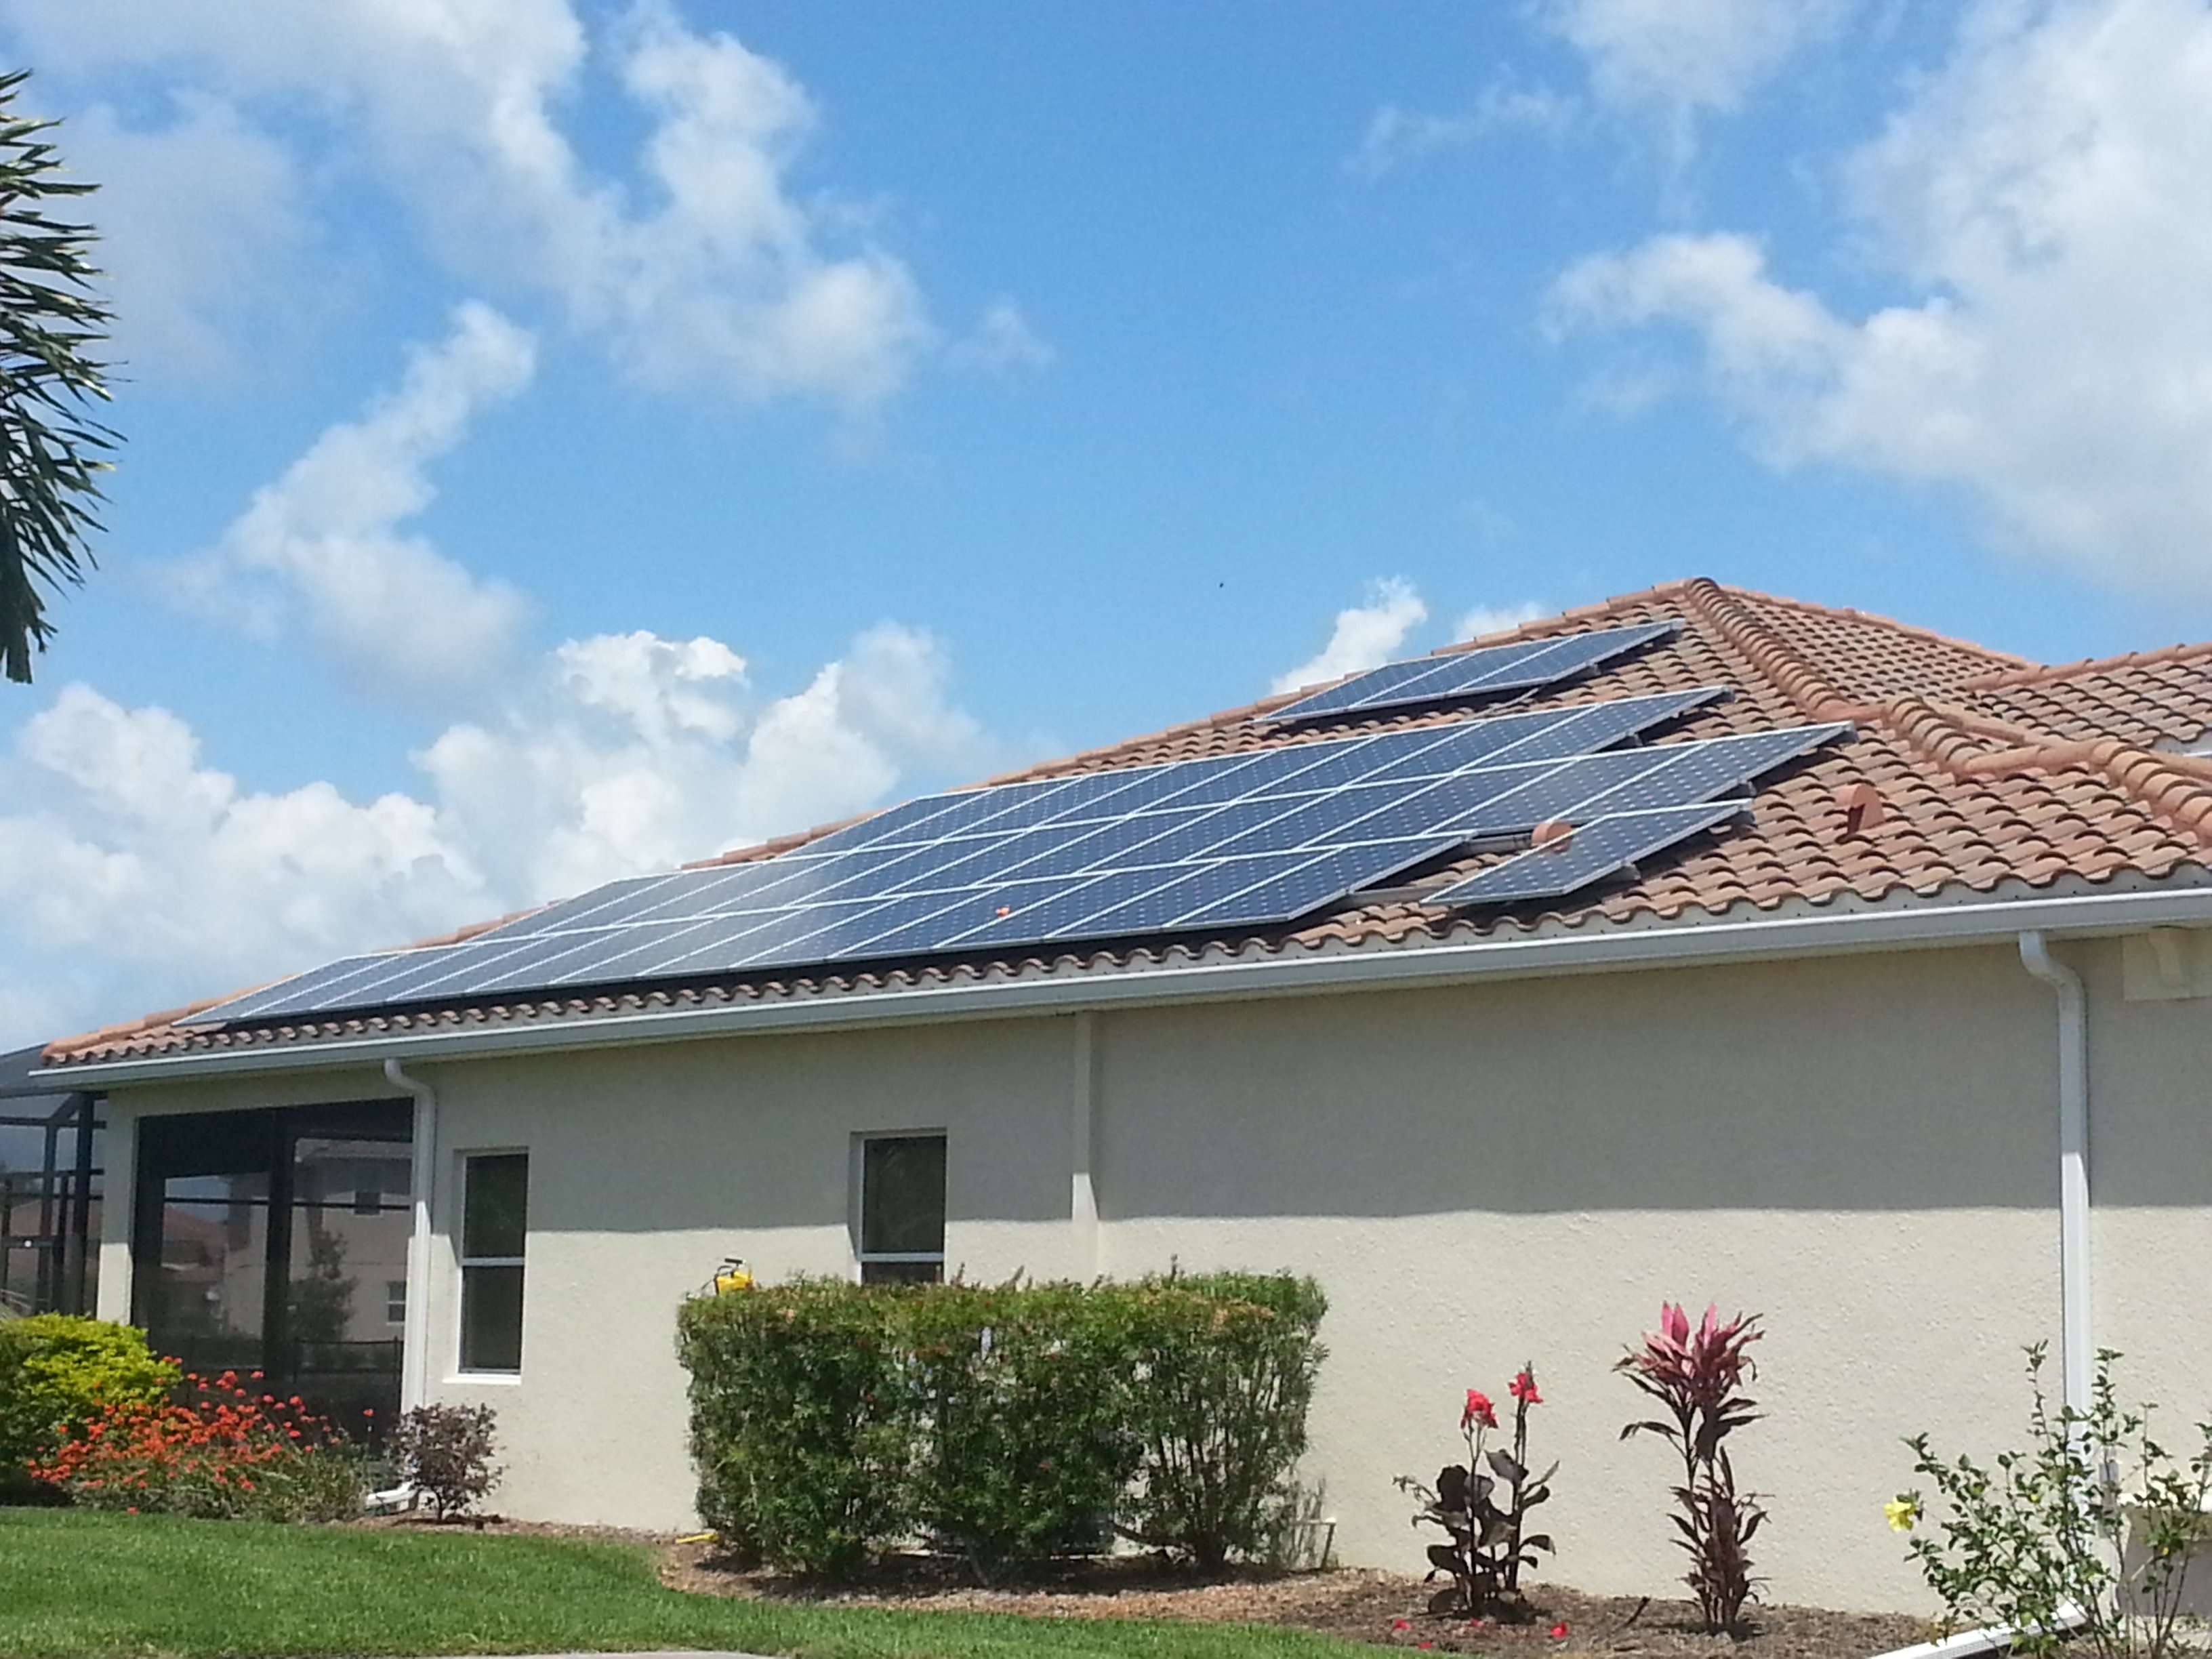 The Cost Of Solar Panels For Home Use In Sarasota